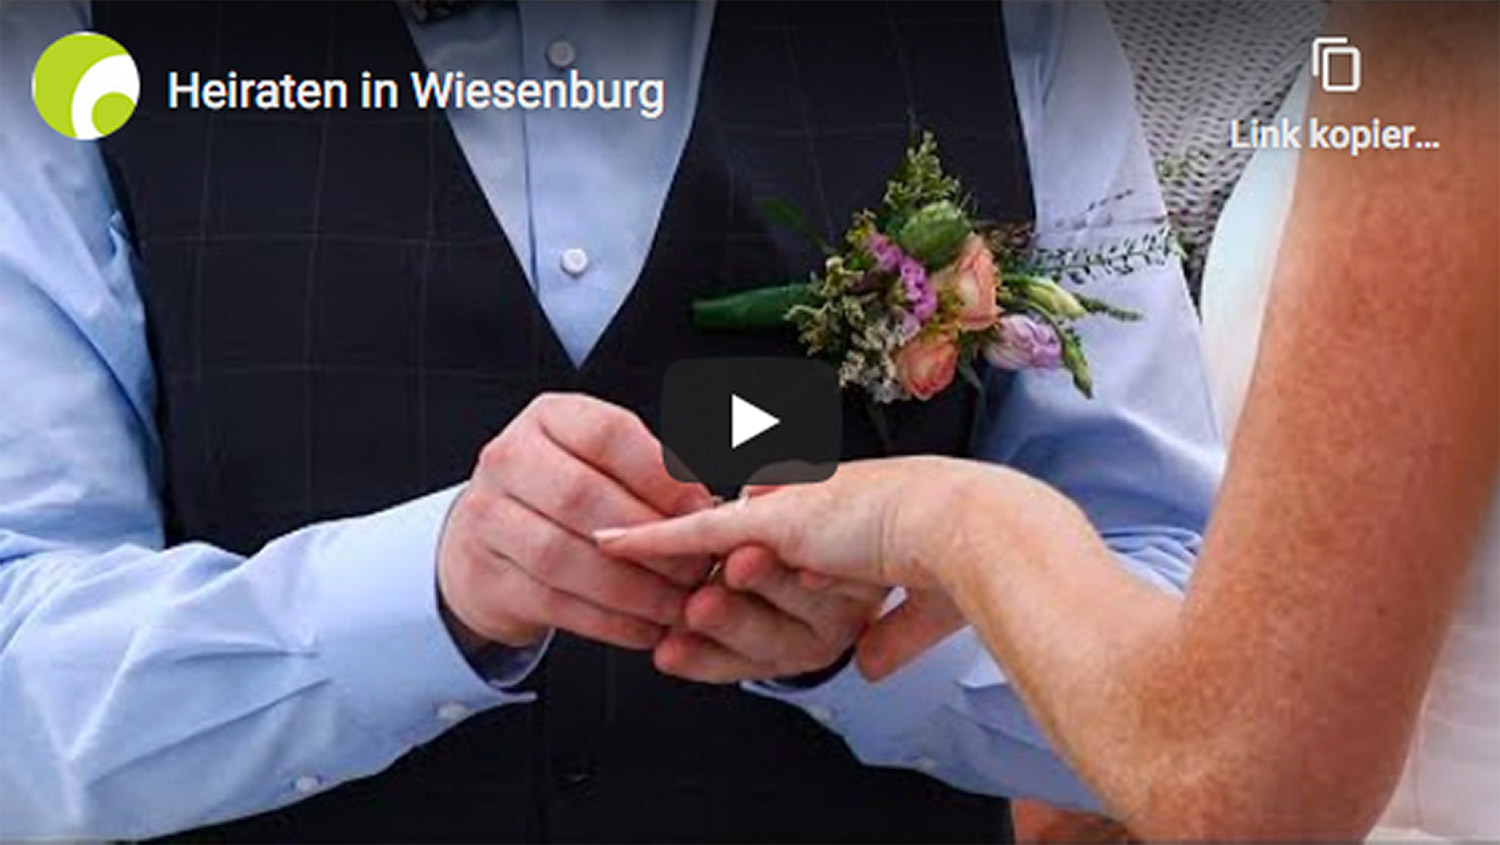 Heiraten in Wiesenburg